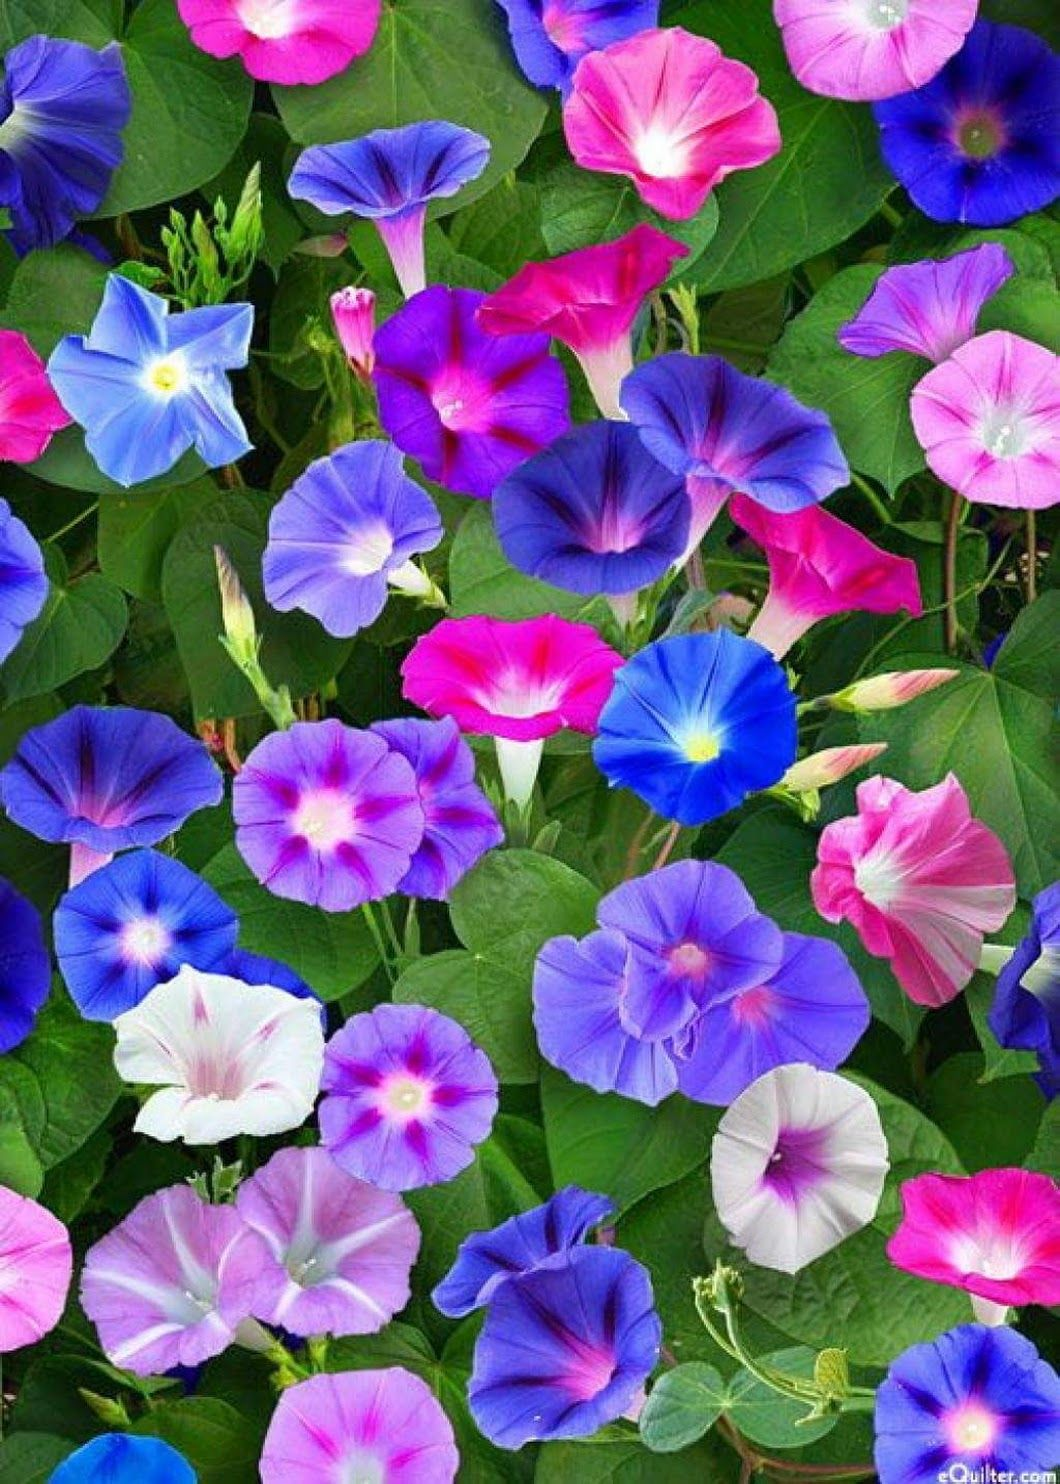 Morning Glory flowers are a firm favourite! Morning